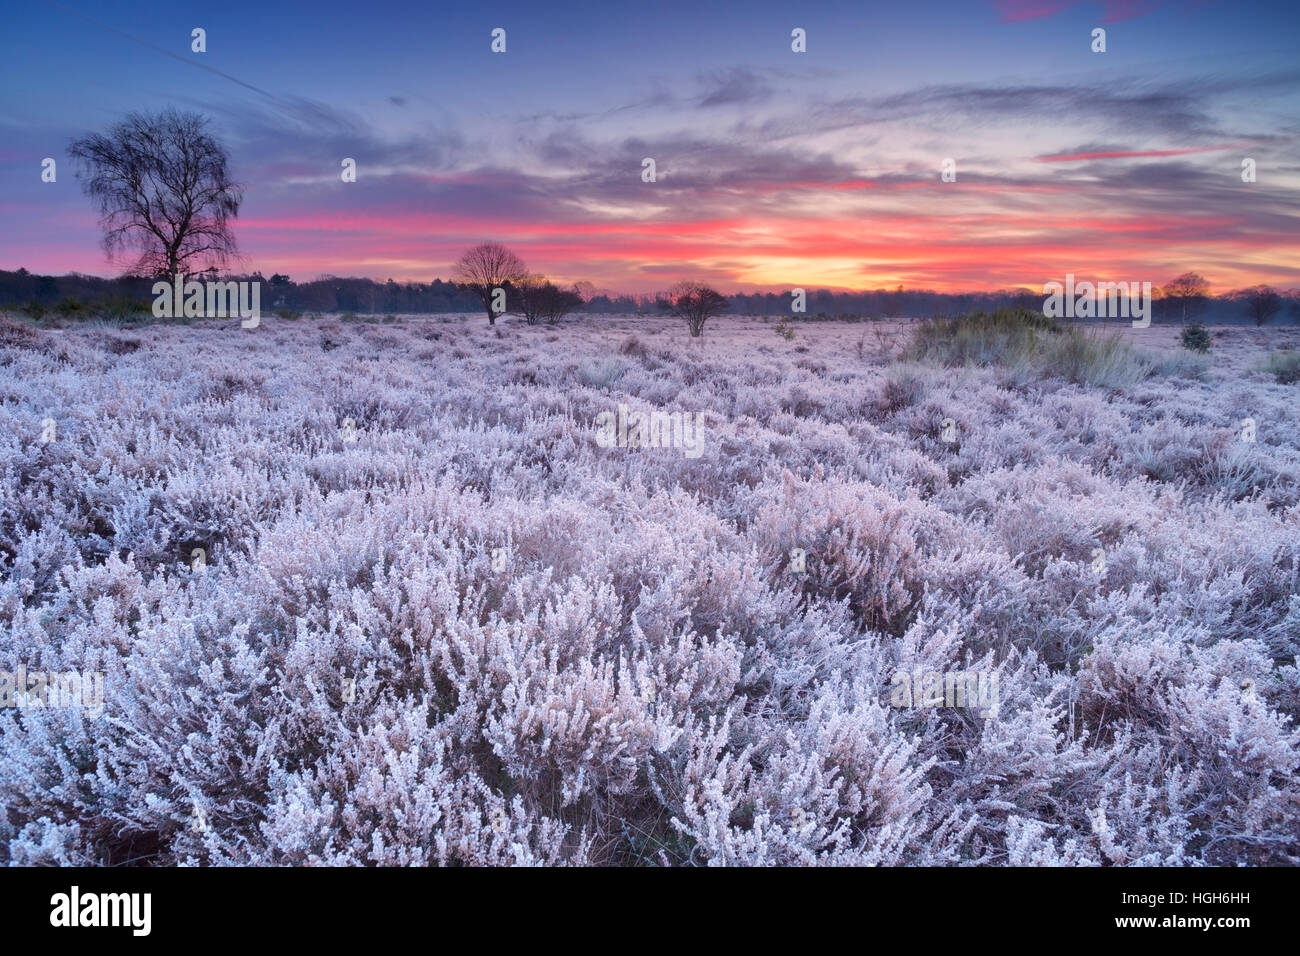 Frosted heather in winter, photographed just before sunrise near Hilversum in The Netherlands. Stock Photo